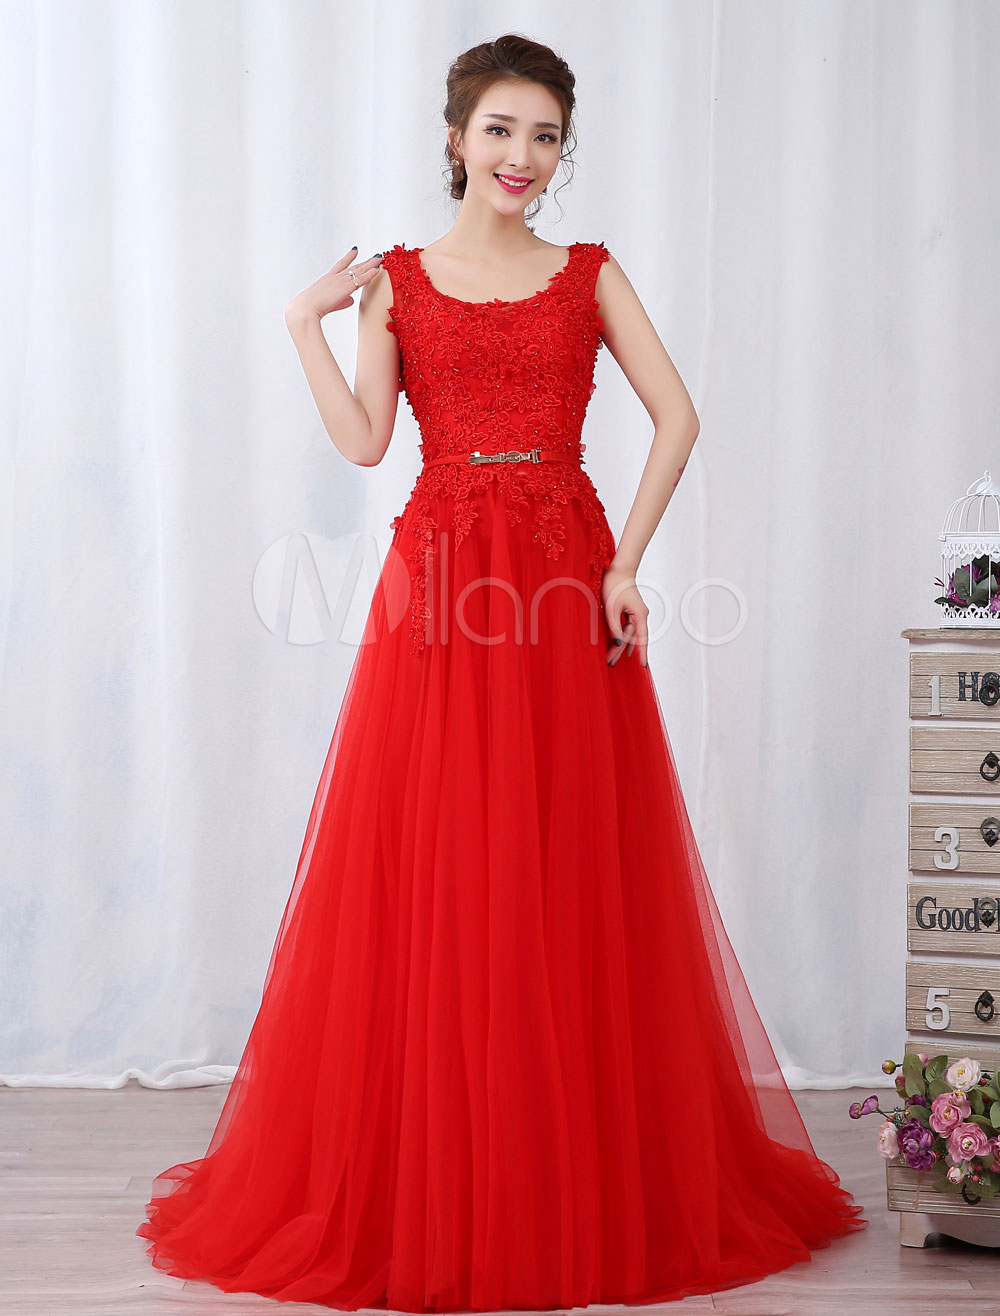 Red Evening Dresses Lace Beading Tulle Backless Sash Sleeveless Formal Occasion Dress (Wedding Cheap Party Dress) photo